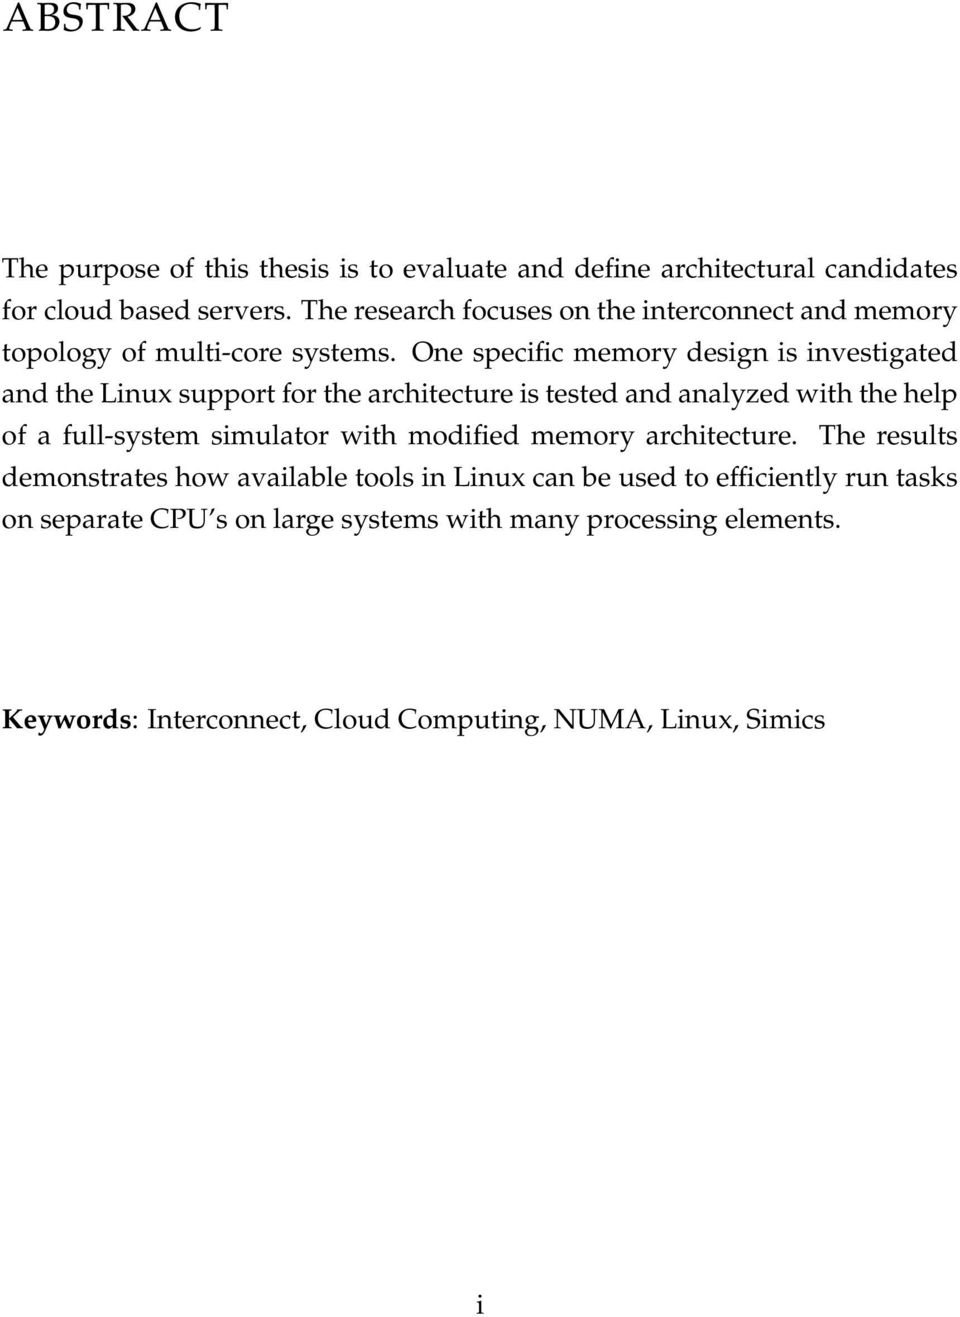 One specific memory design is investigated and the Linux support for the architecture is tested and analyzed with the help of a full-system simulator